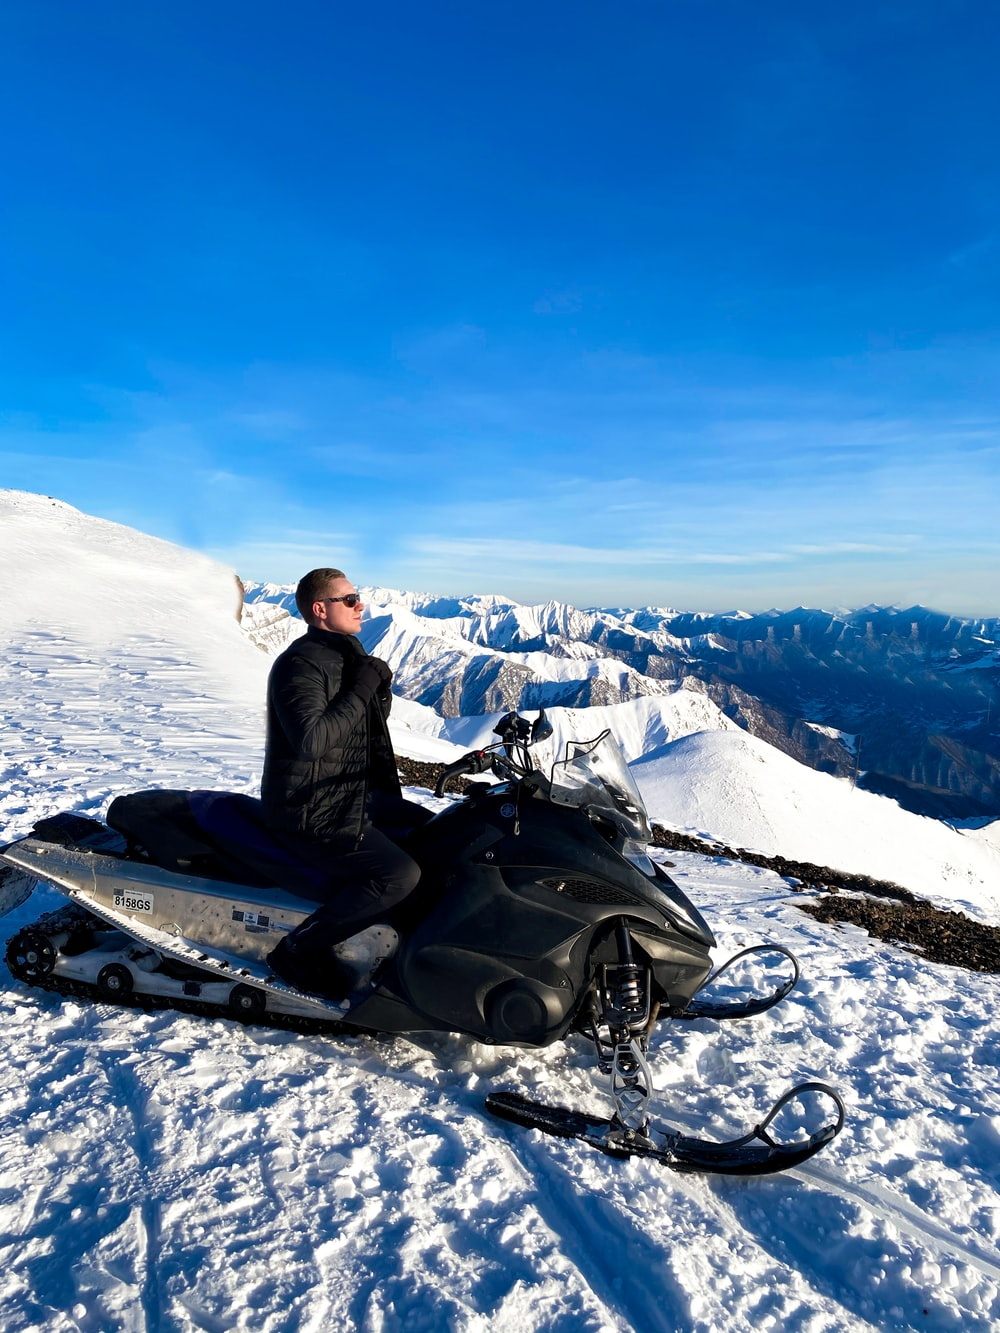 man in black jacket sitting on snow covered ground during daytime